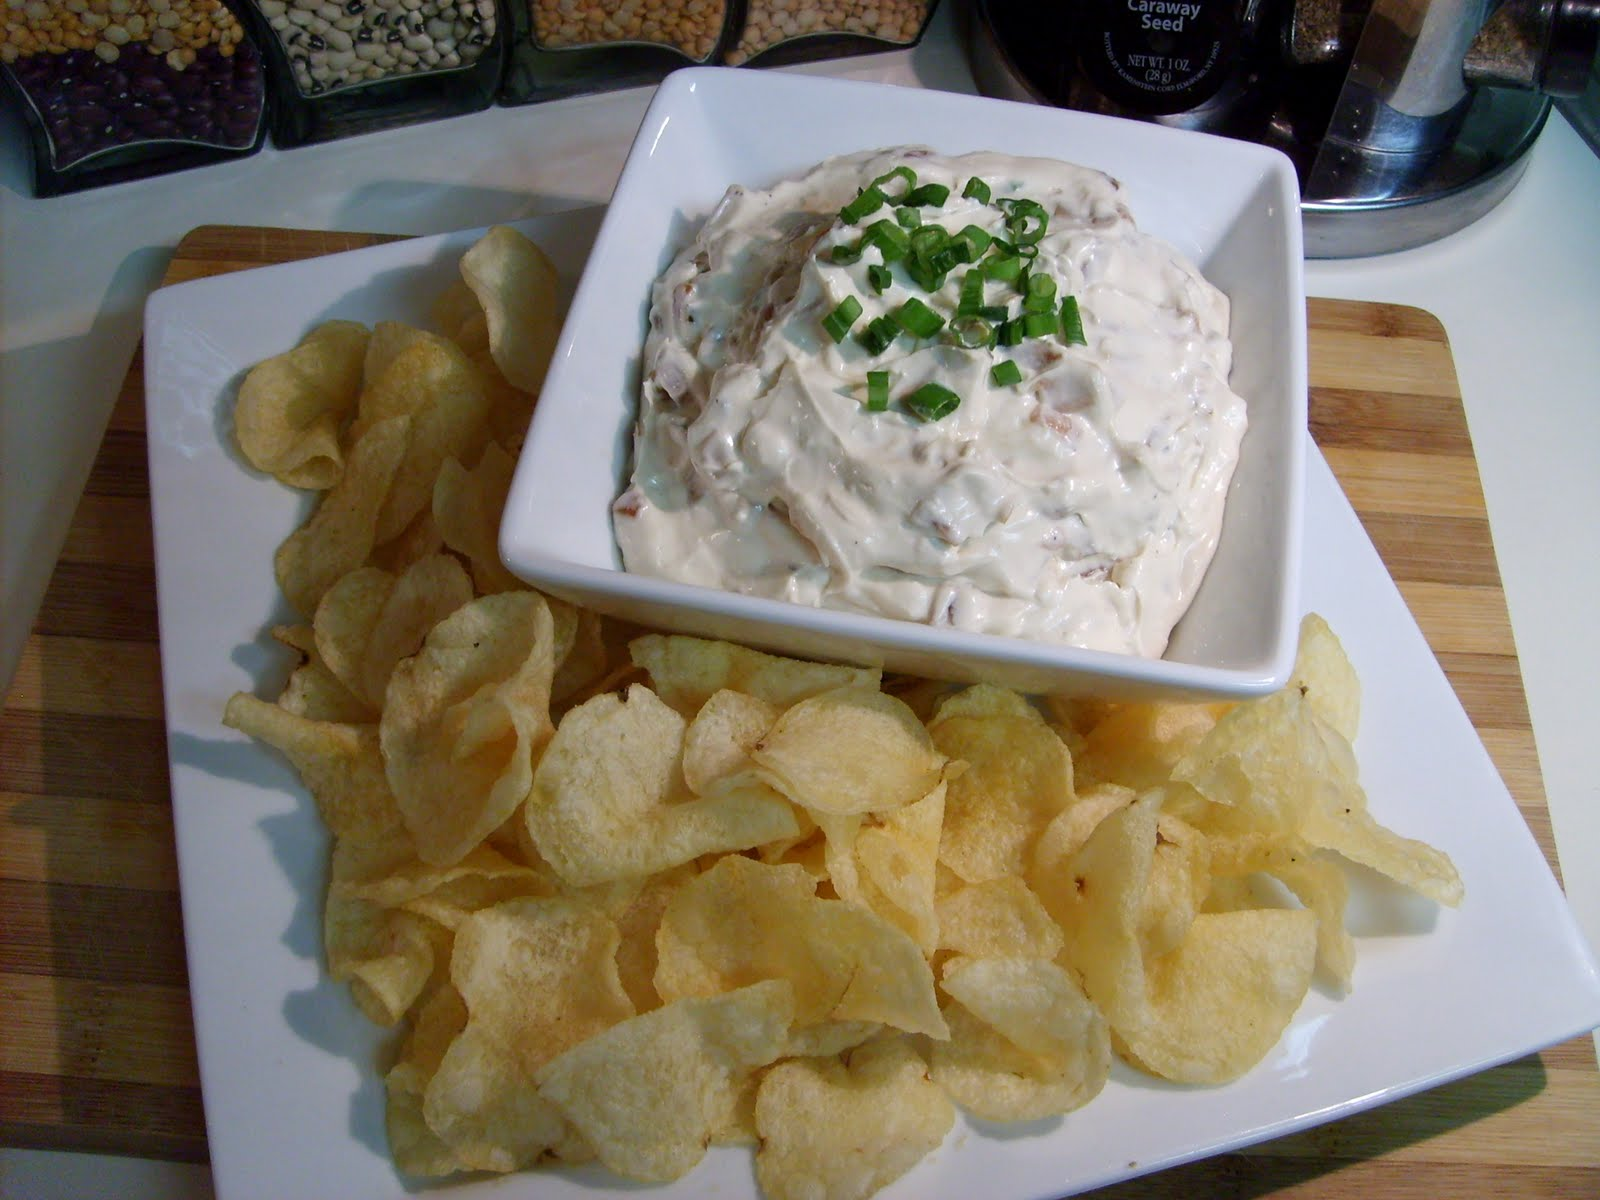 The Open Pantry: Caramelized Onion Dip